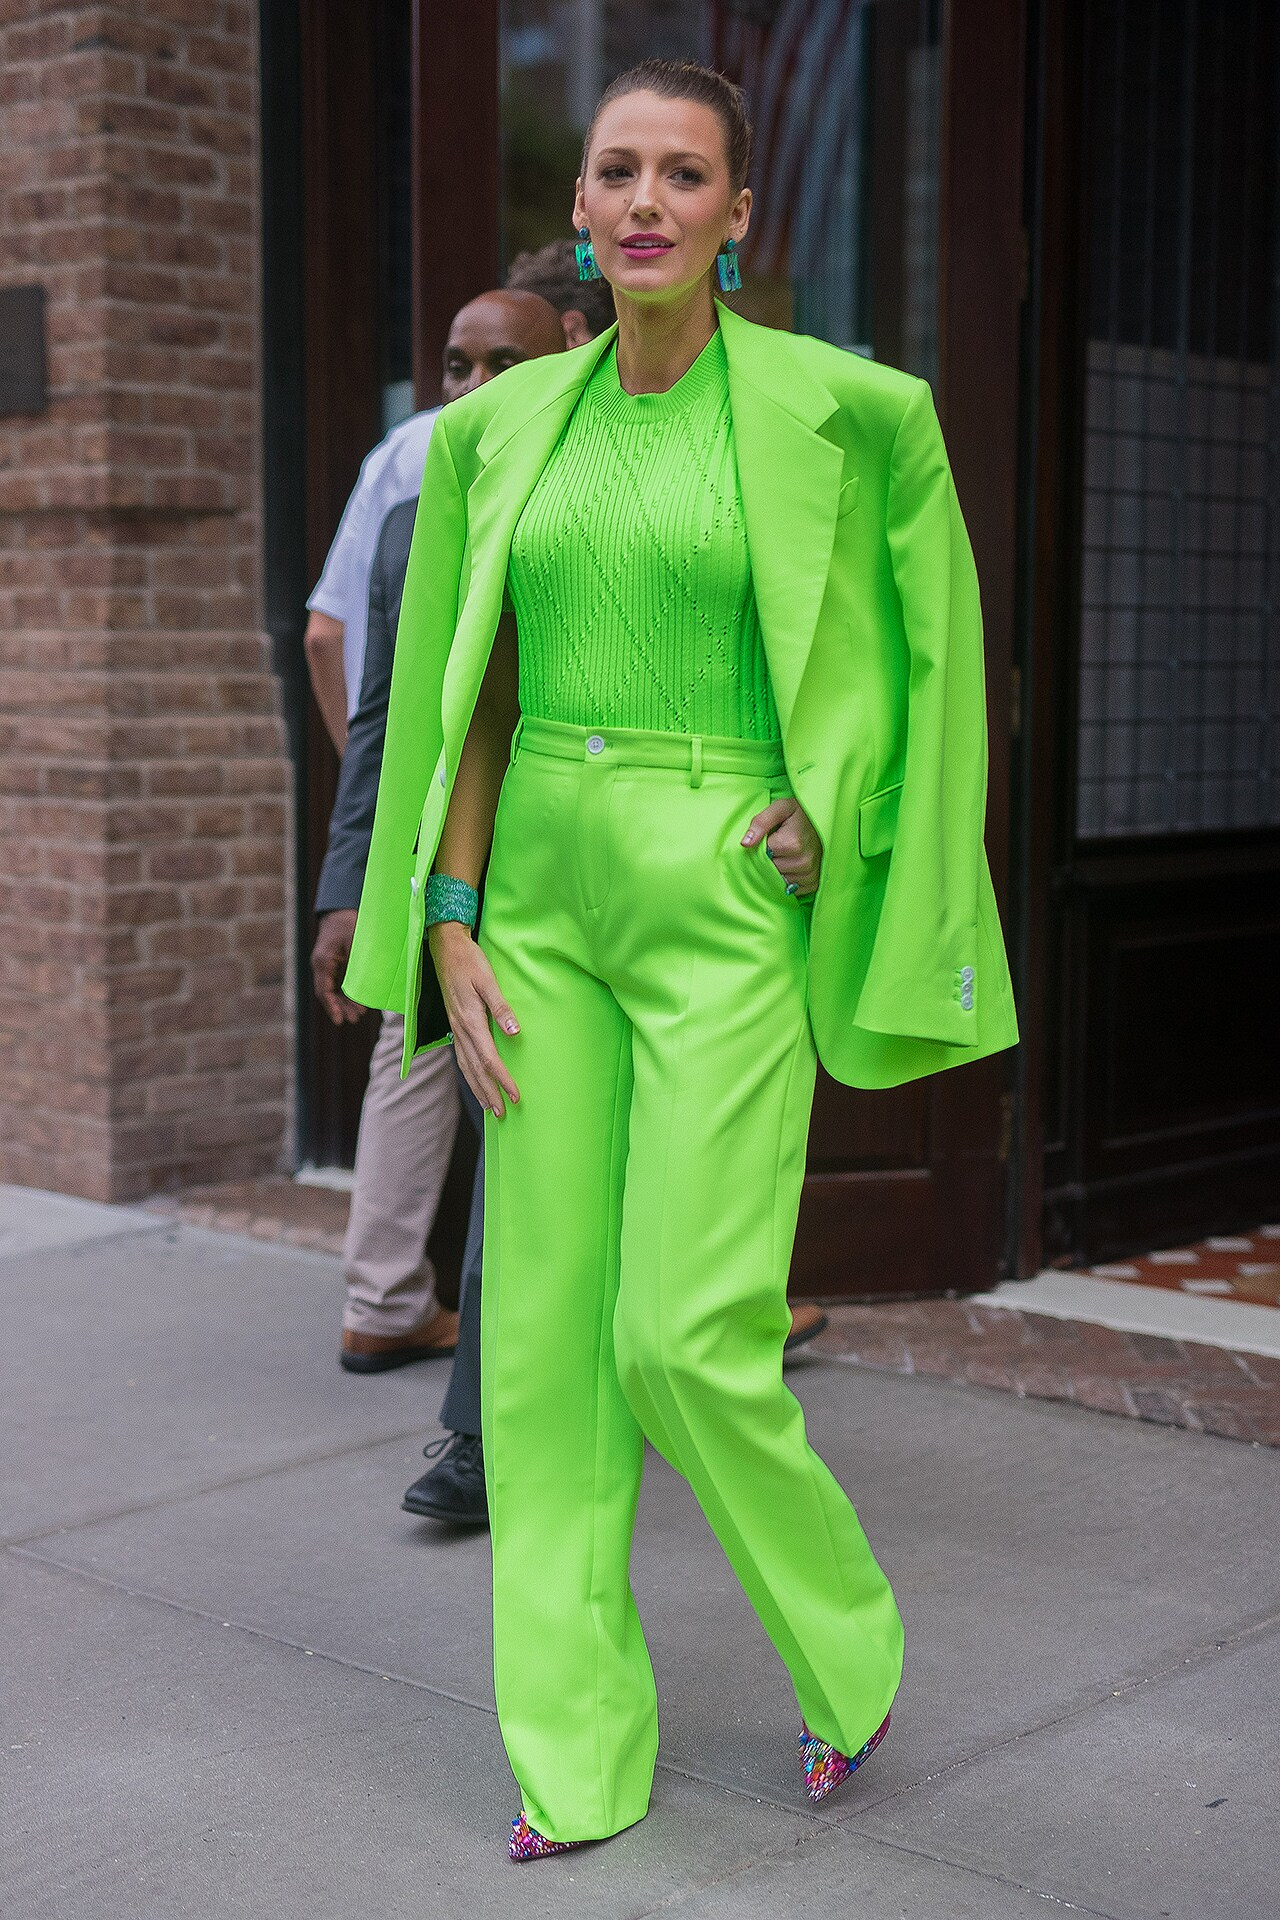 5 ways to wear neon as well as Blake Lively